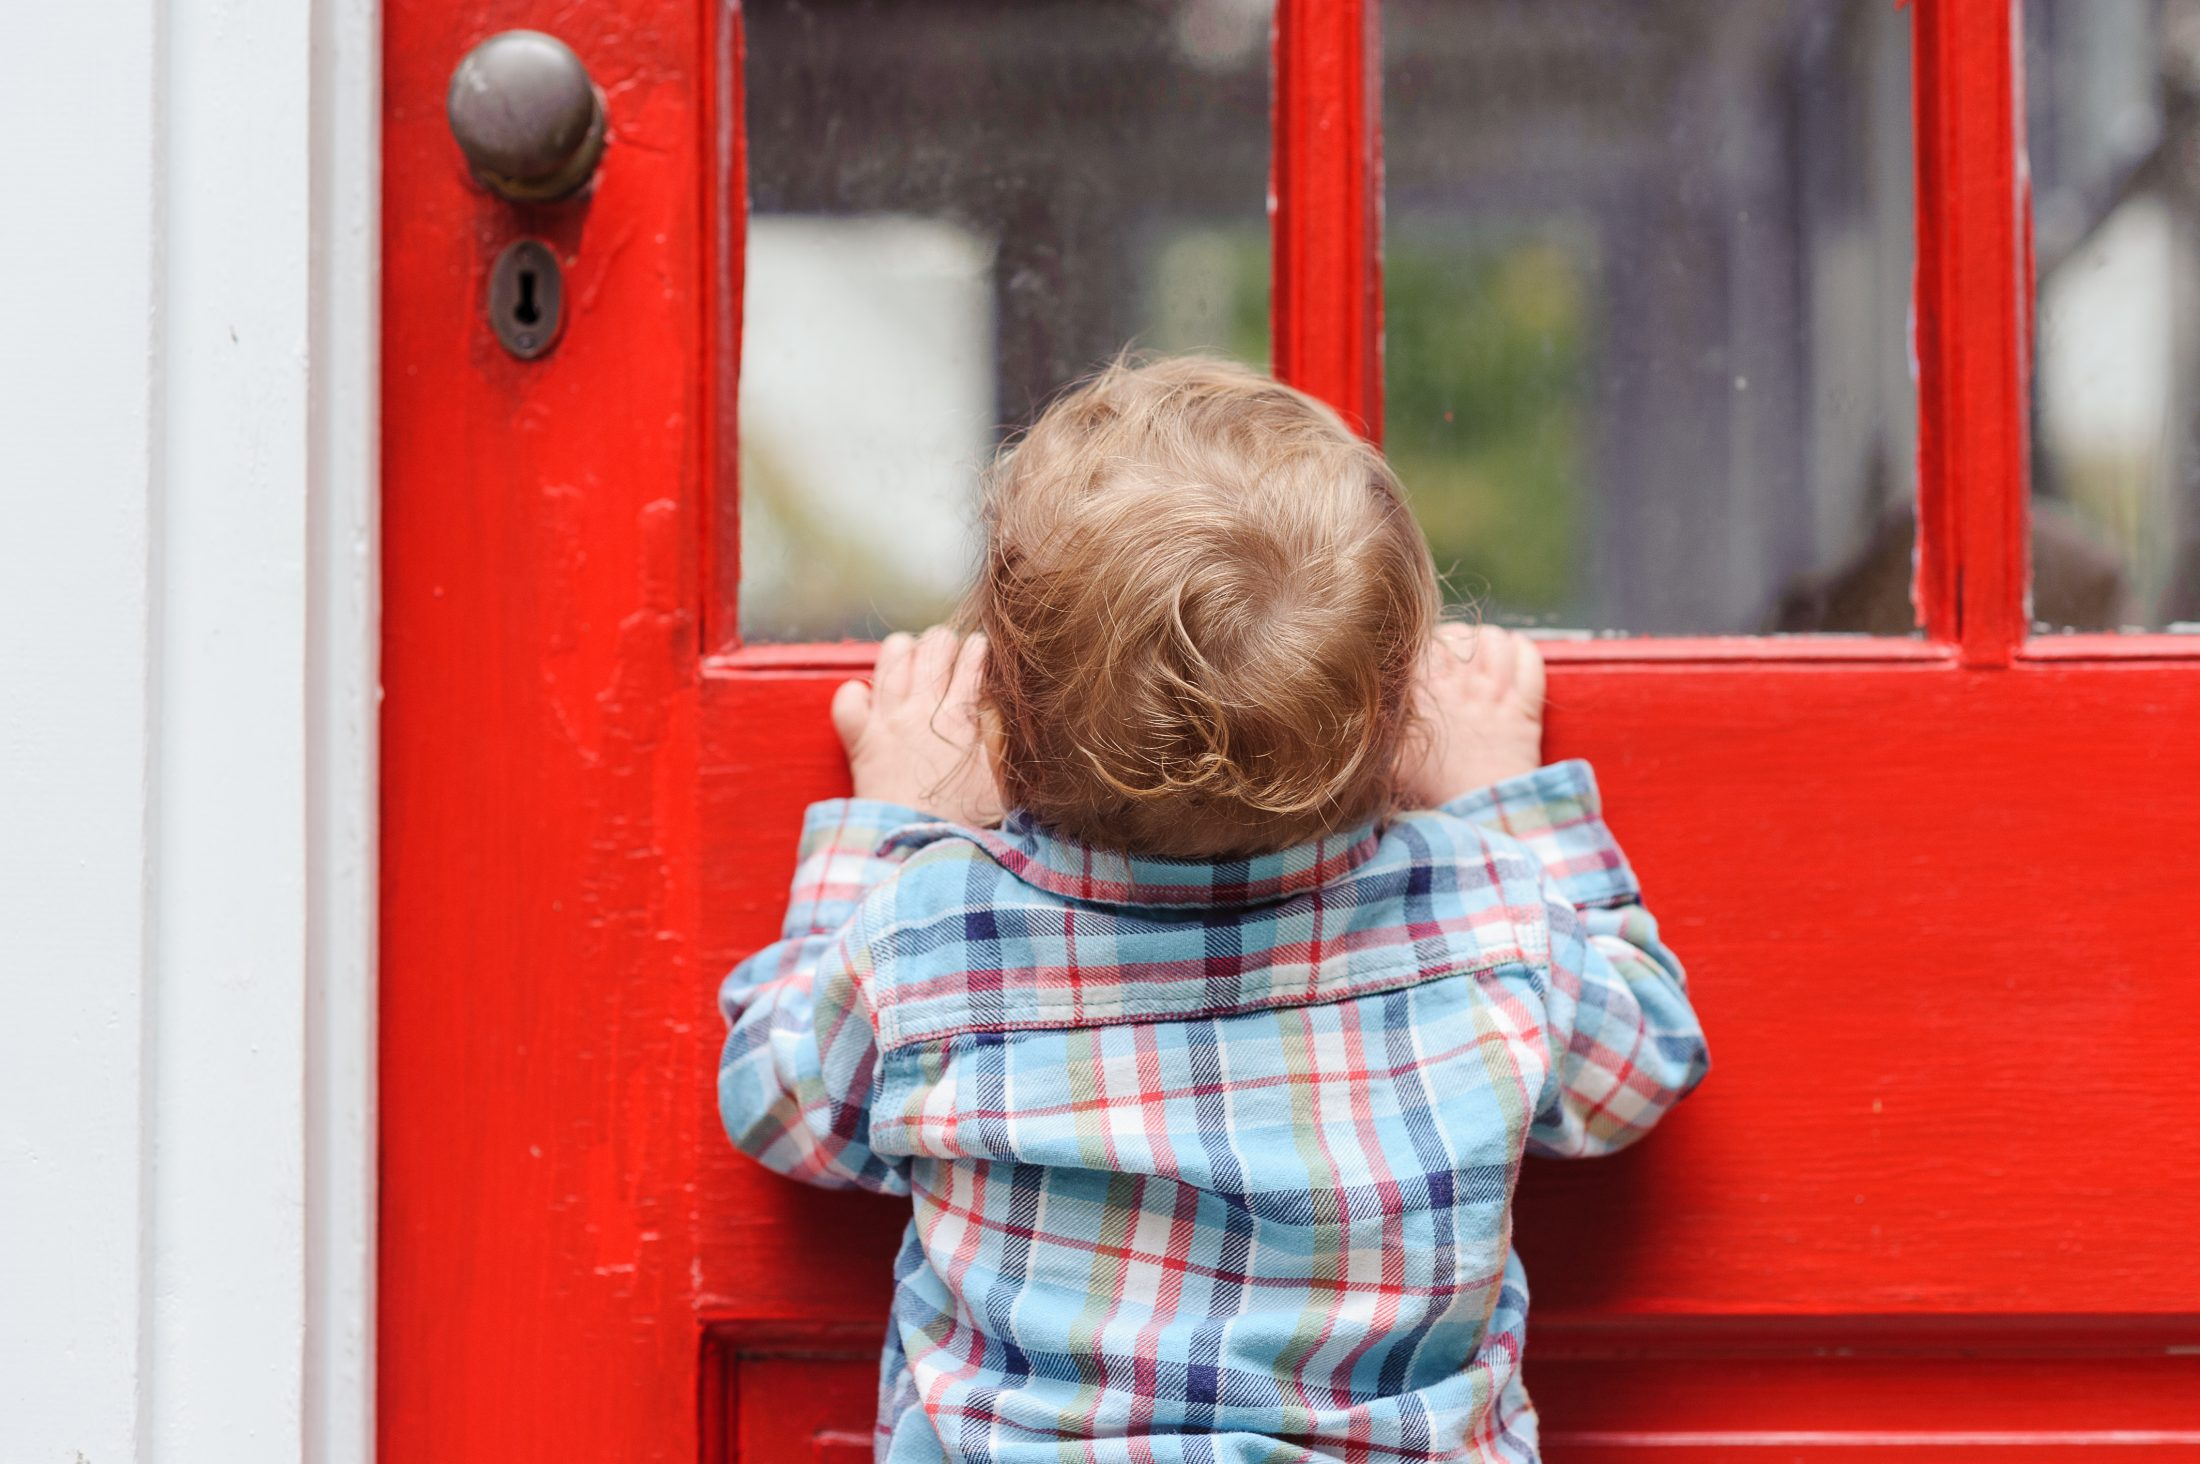 Tommy Brimley as a baby looking into his house in DC